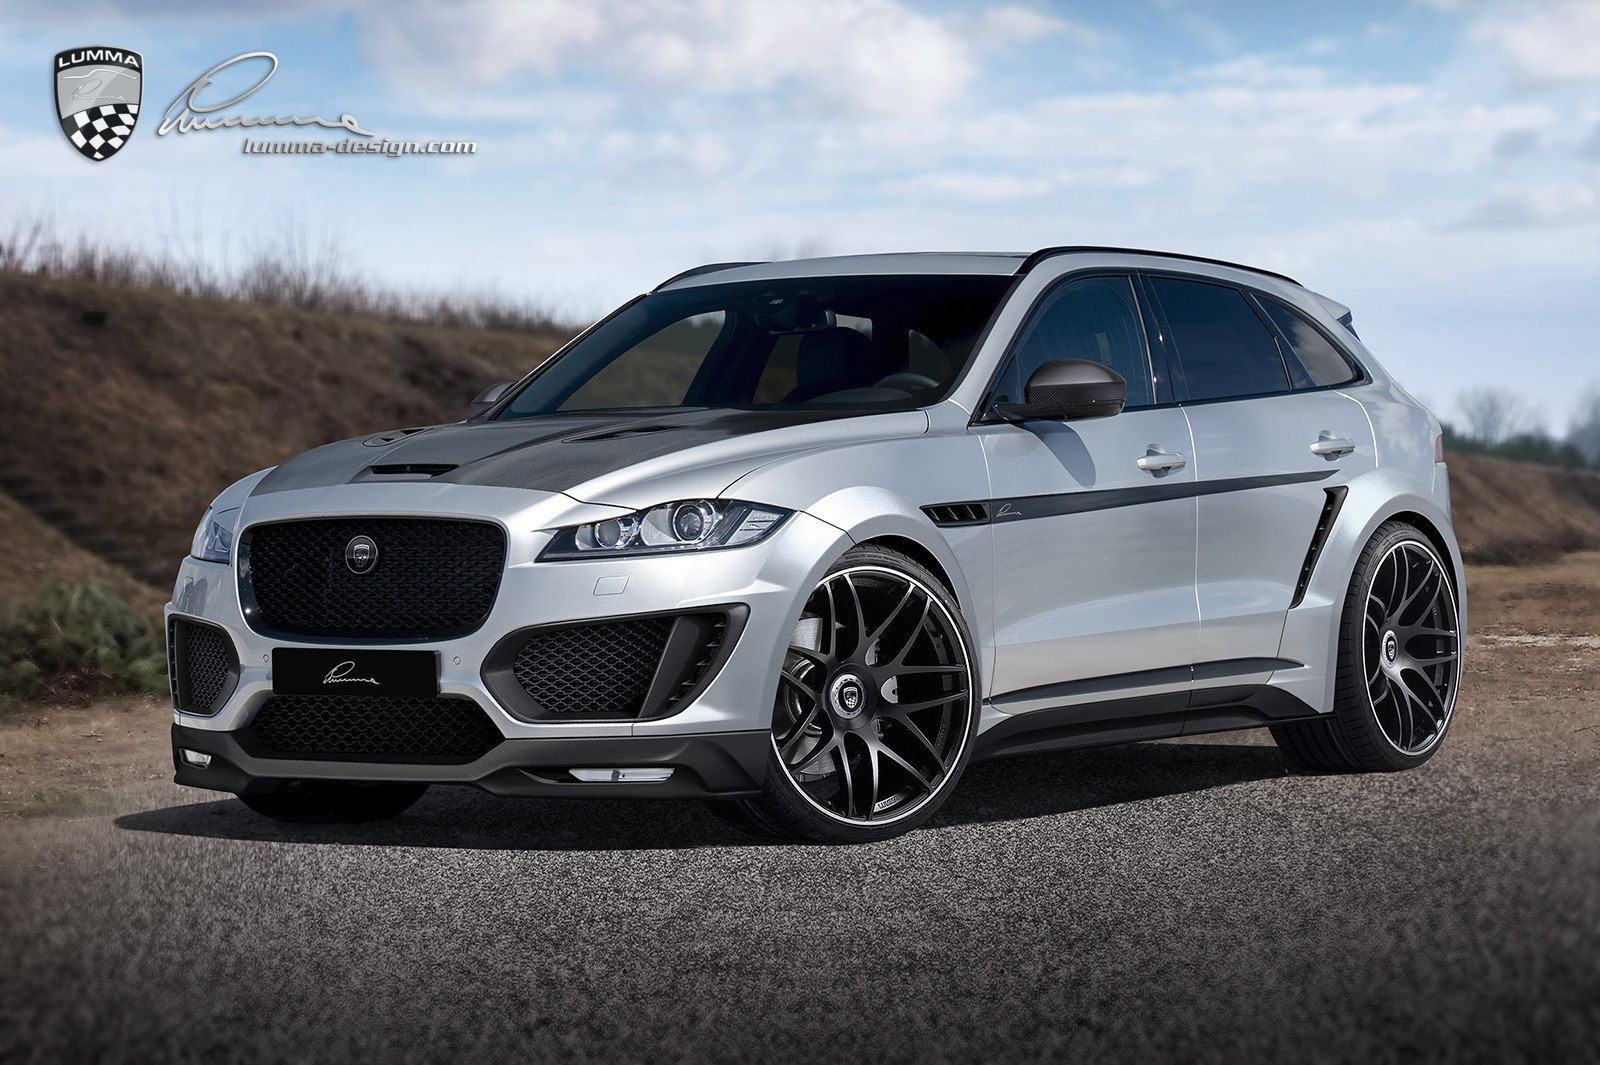 Tuning Gallery Parts For Jaguar F Pace Clr Lumma Design Page 1